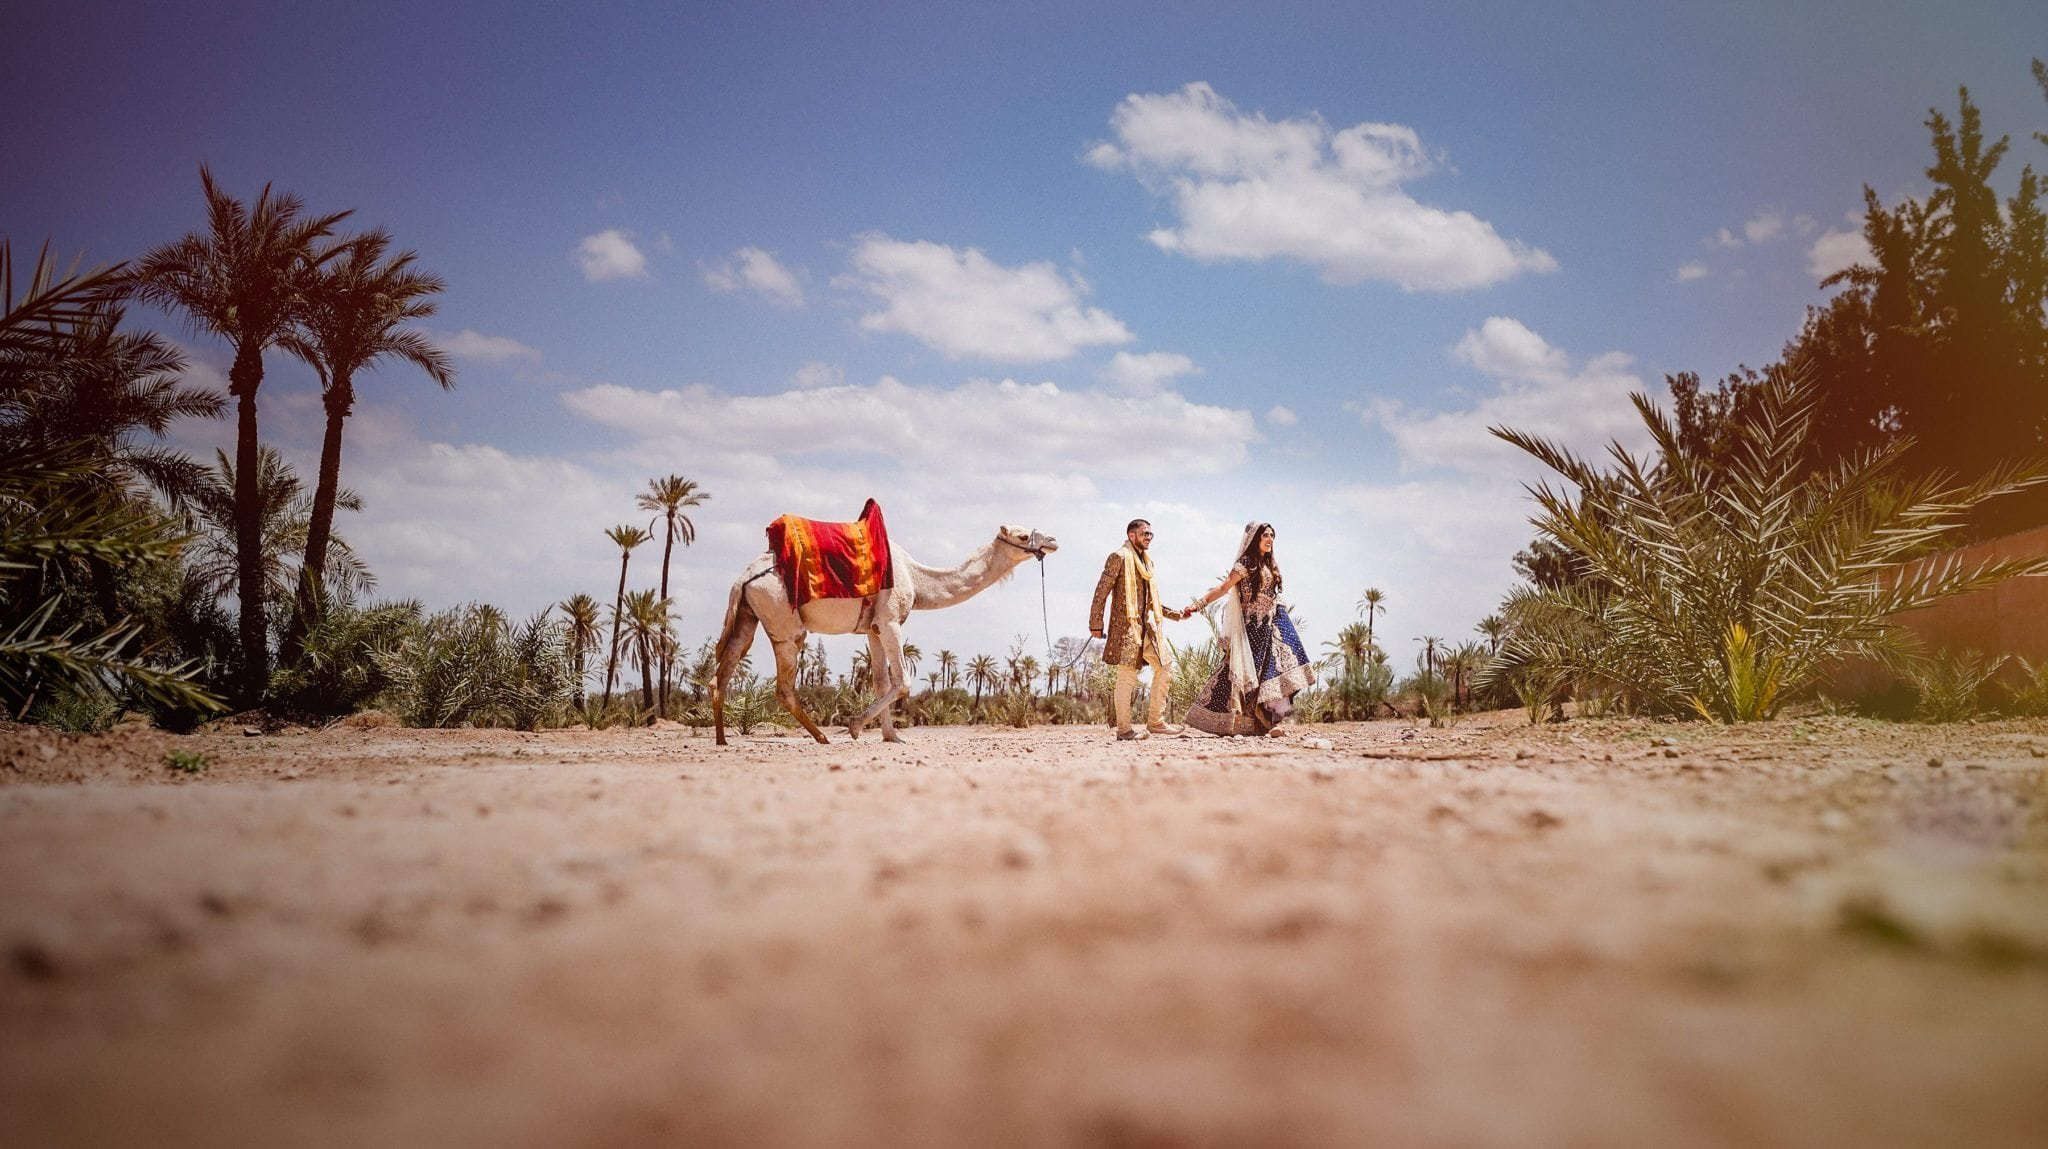 Bride leading her groom through the Sahara Desert in Morocco with a camel | Start Wedding Planning for a desert destination wedding